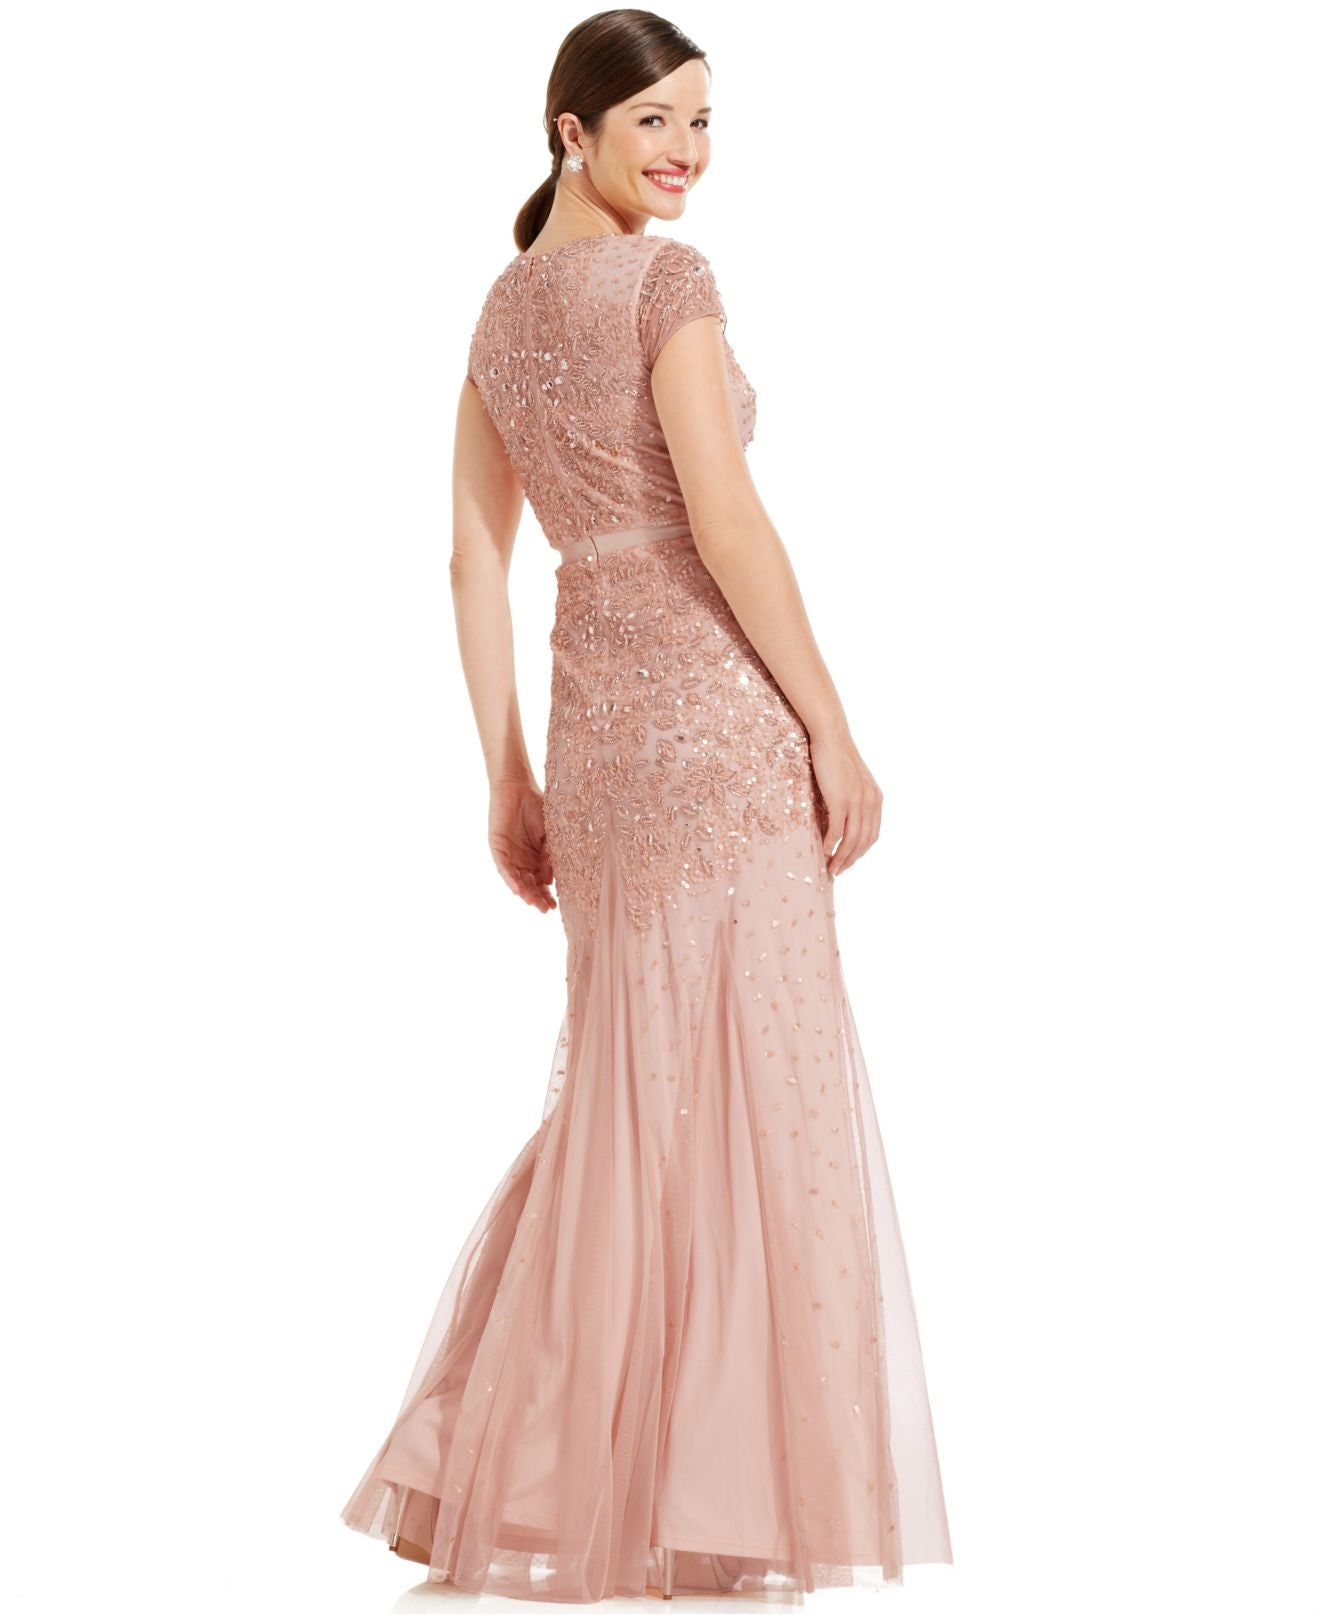 2a0ec506bfff Adrianna Papell Cap-sleeve Beaded Embellished Gown - Blush - Adinas ...